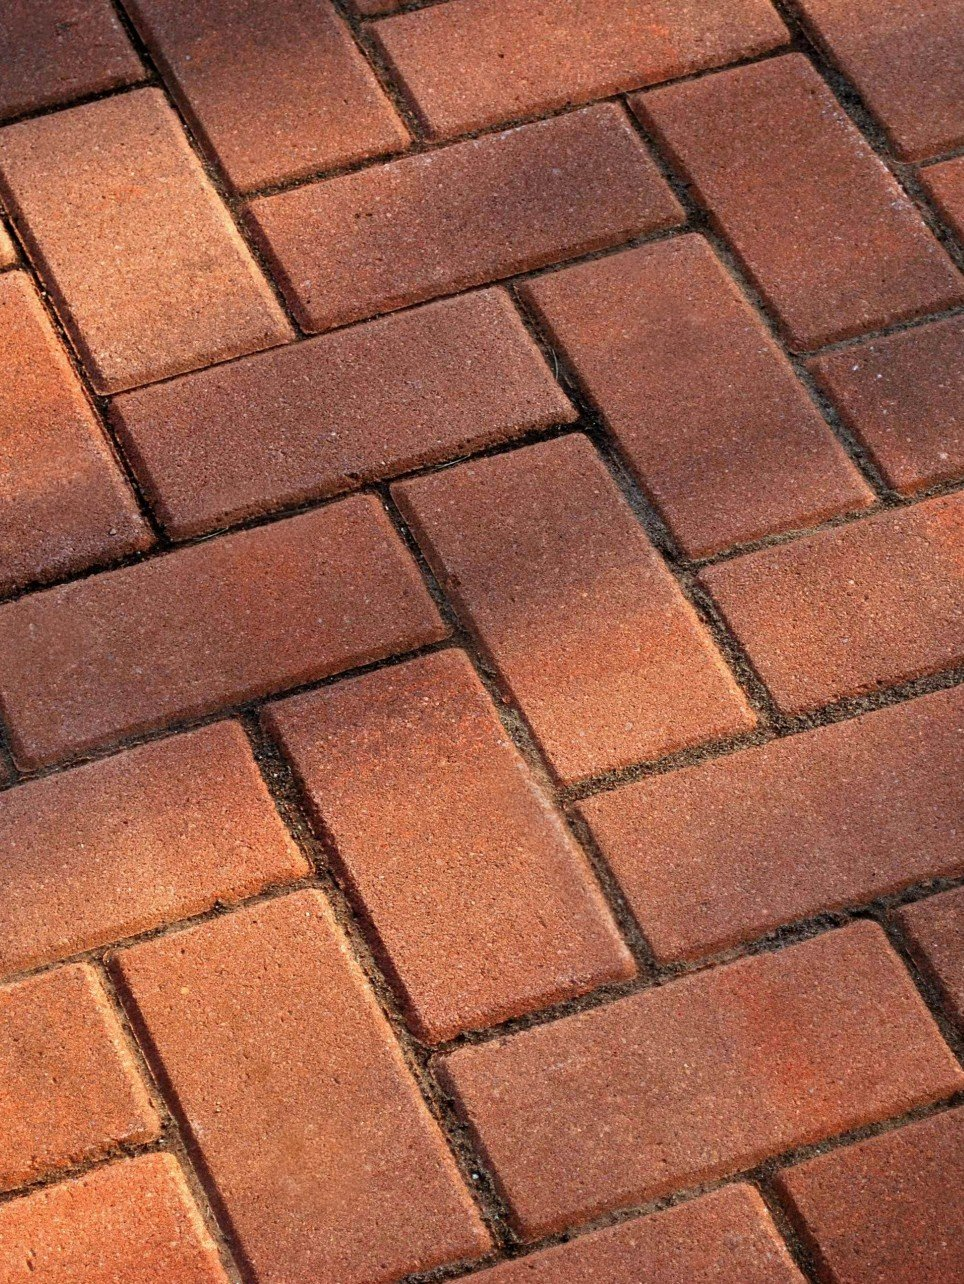 Block Paving Companies Innsworth